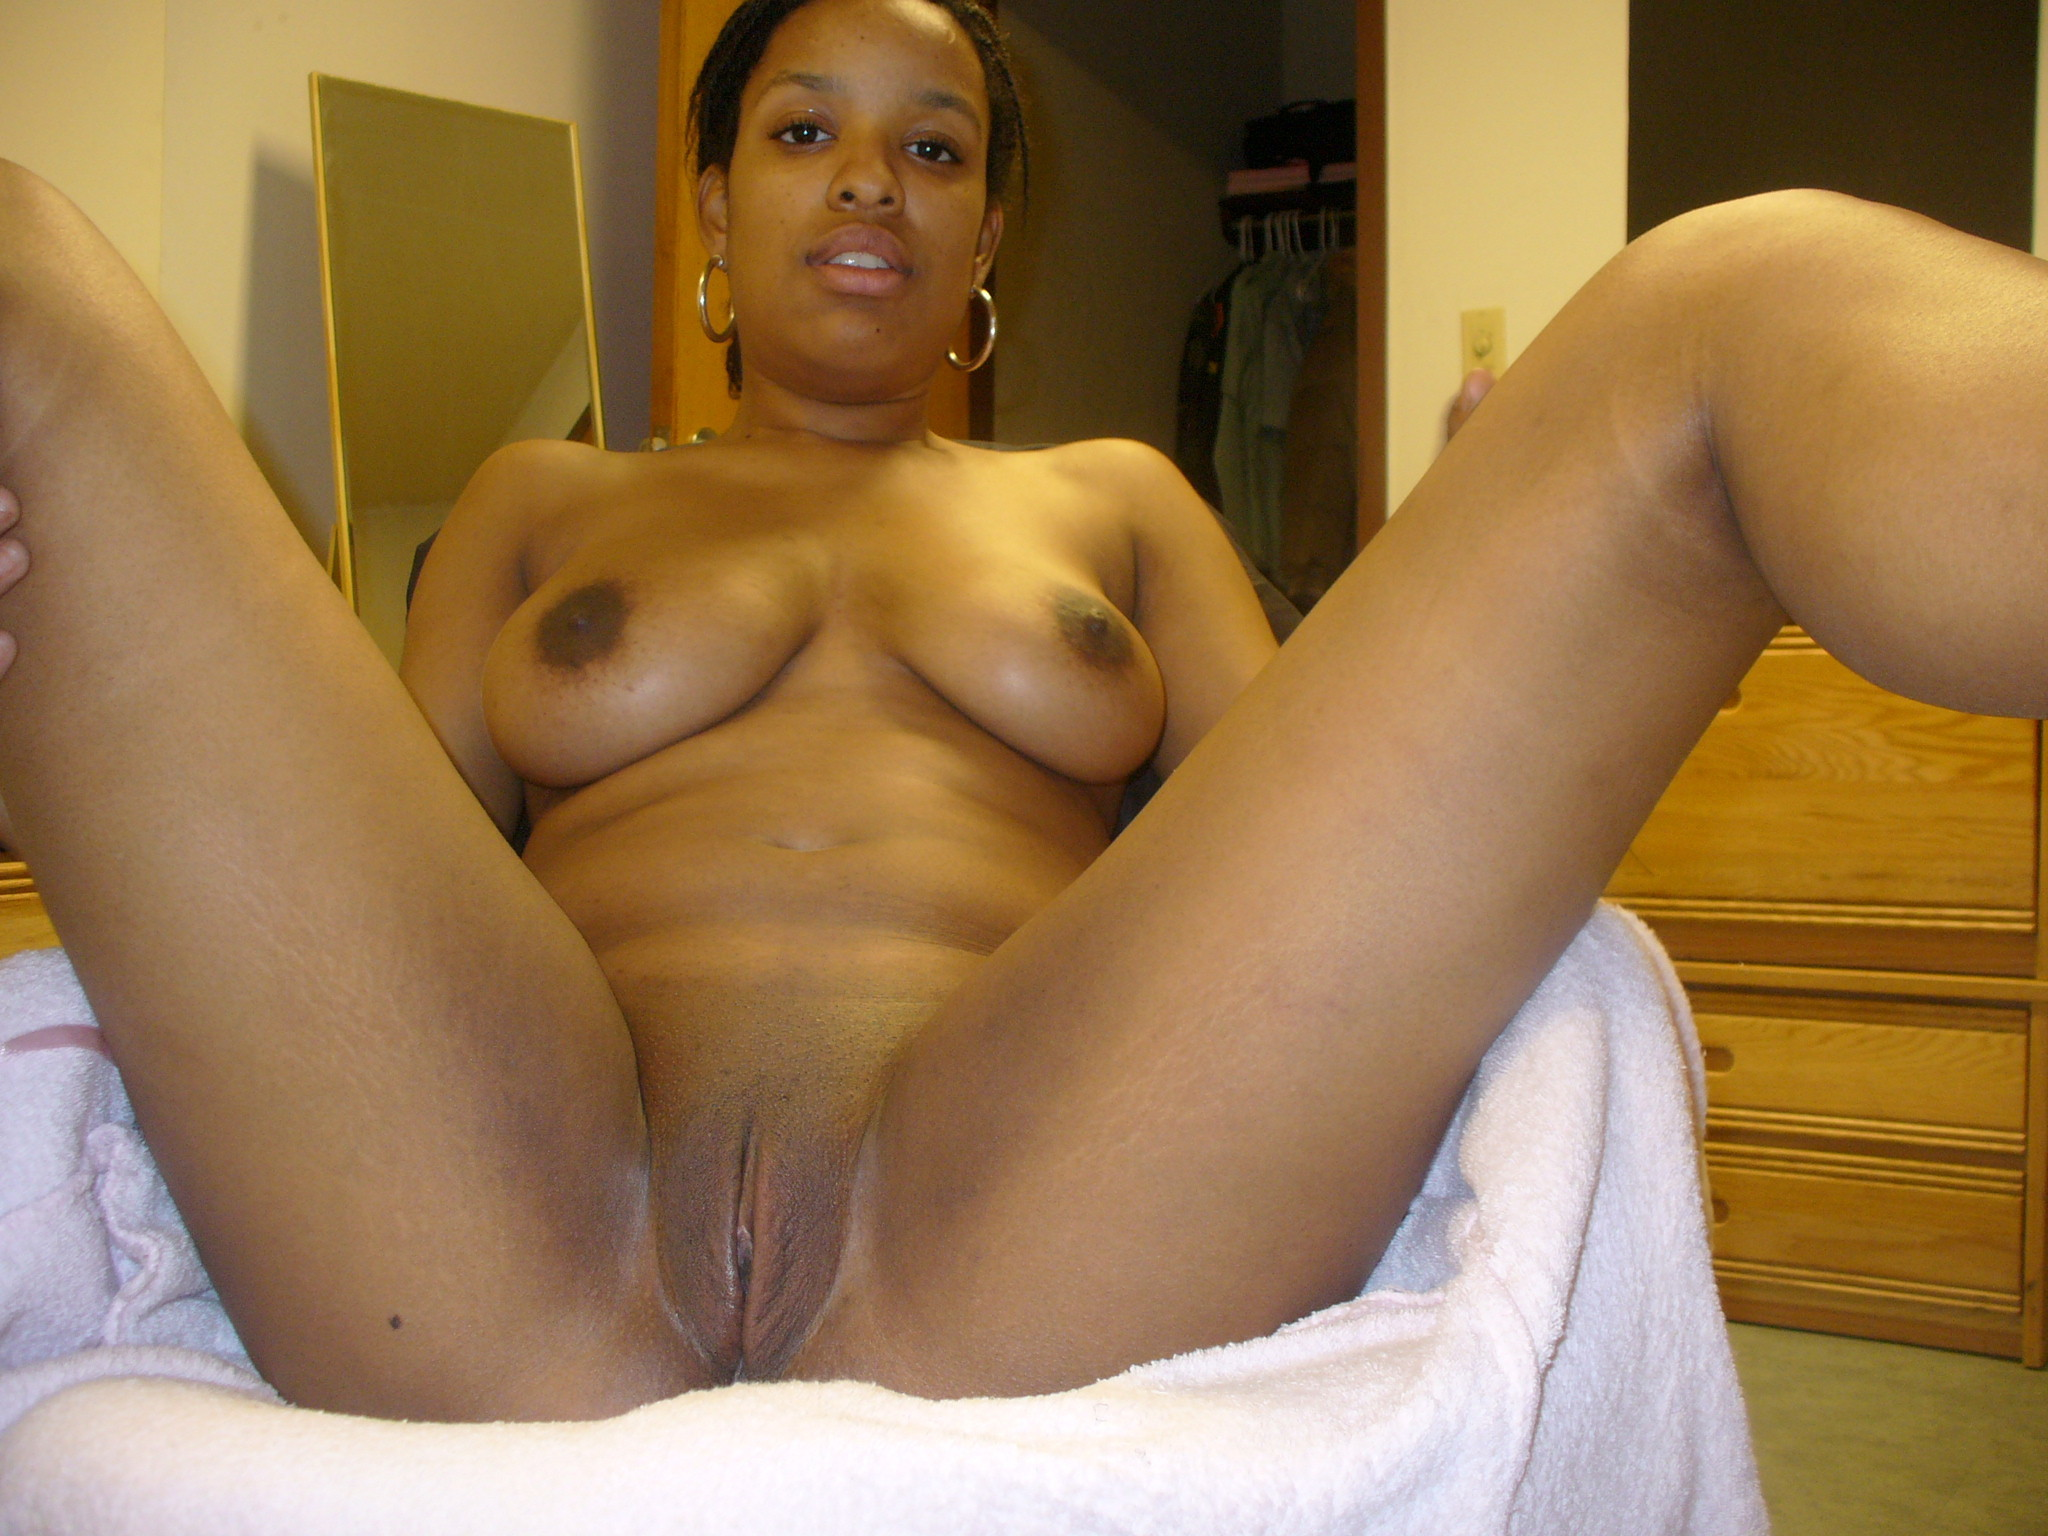 Black dick woman picture 682